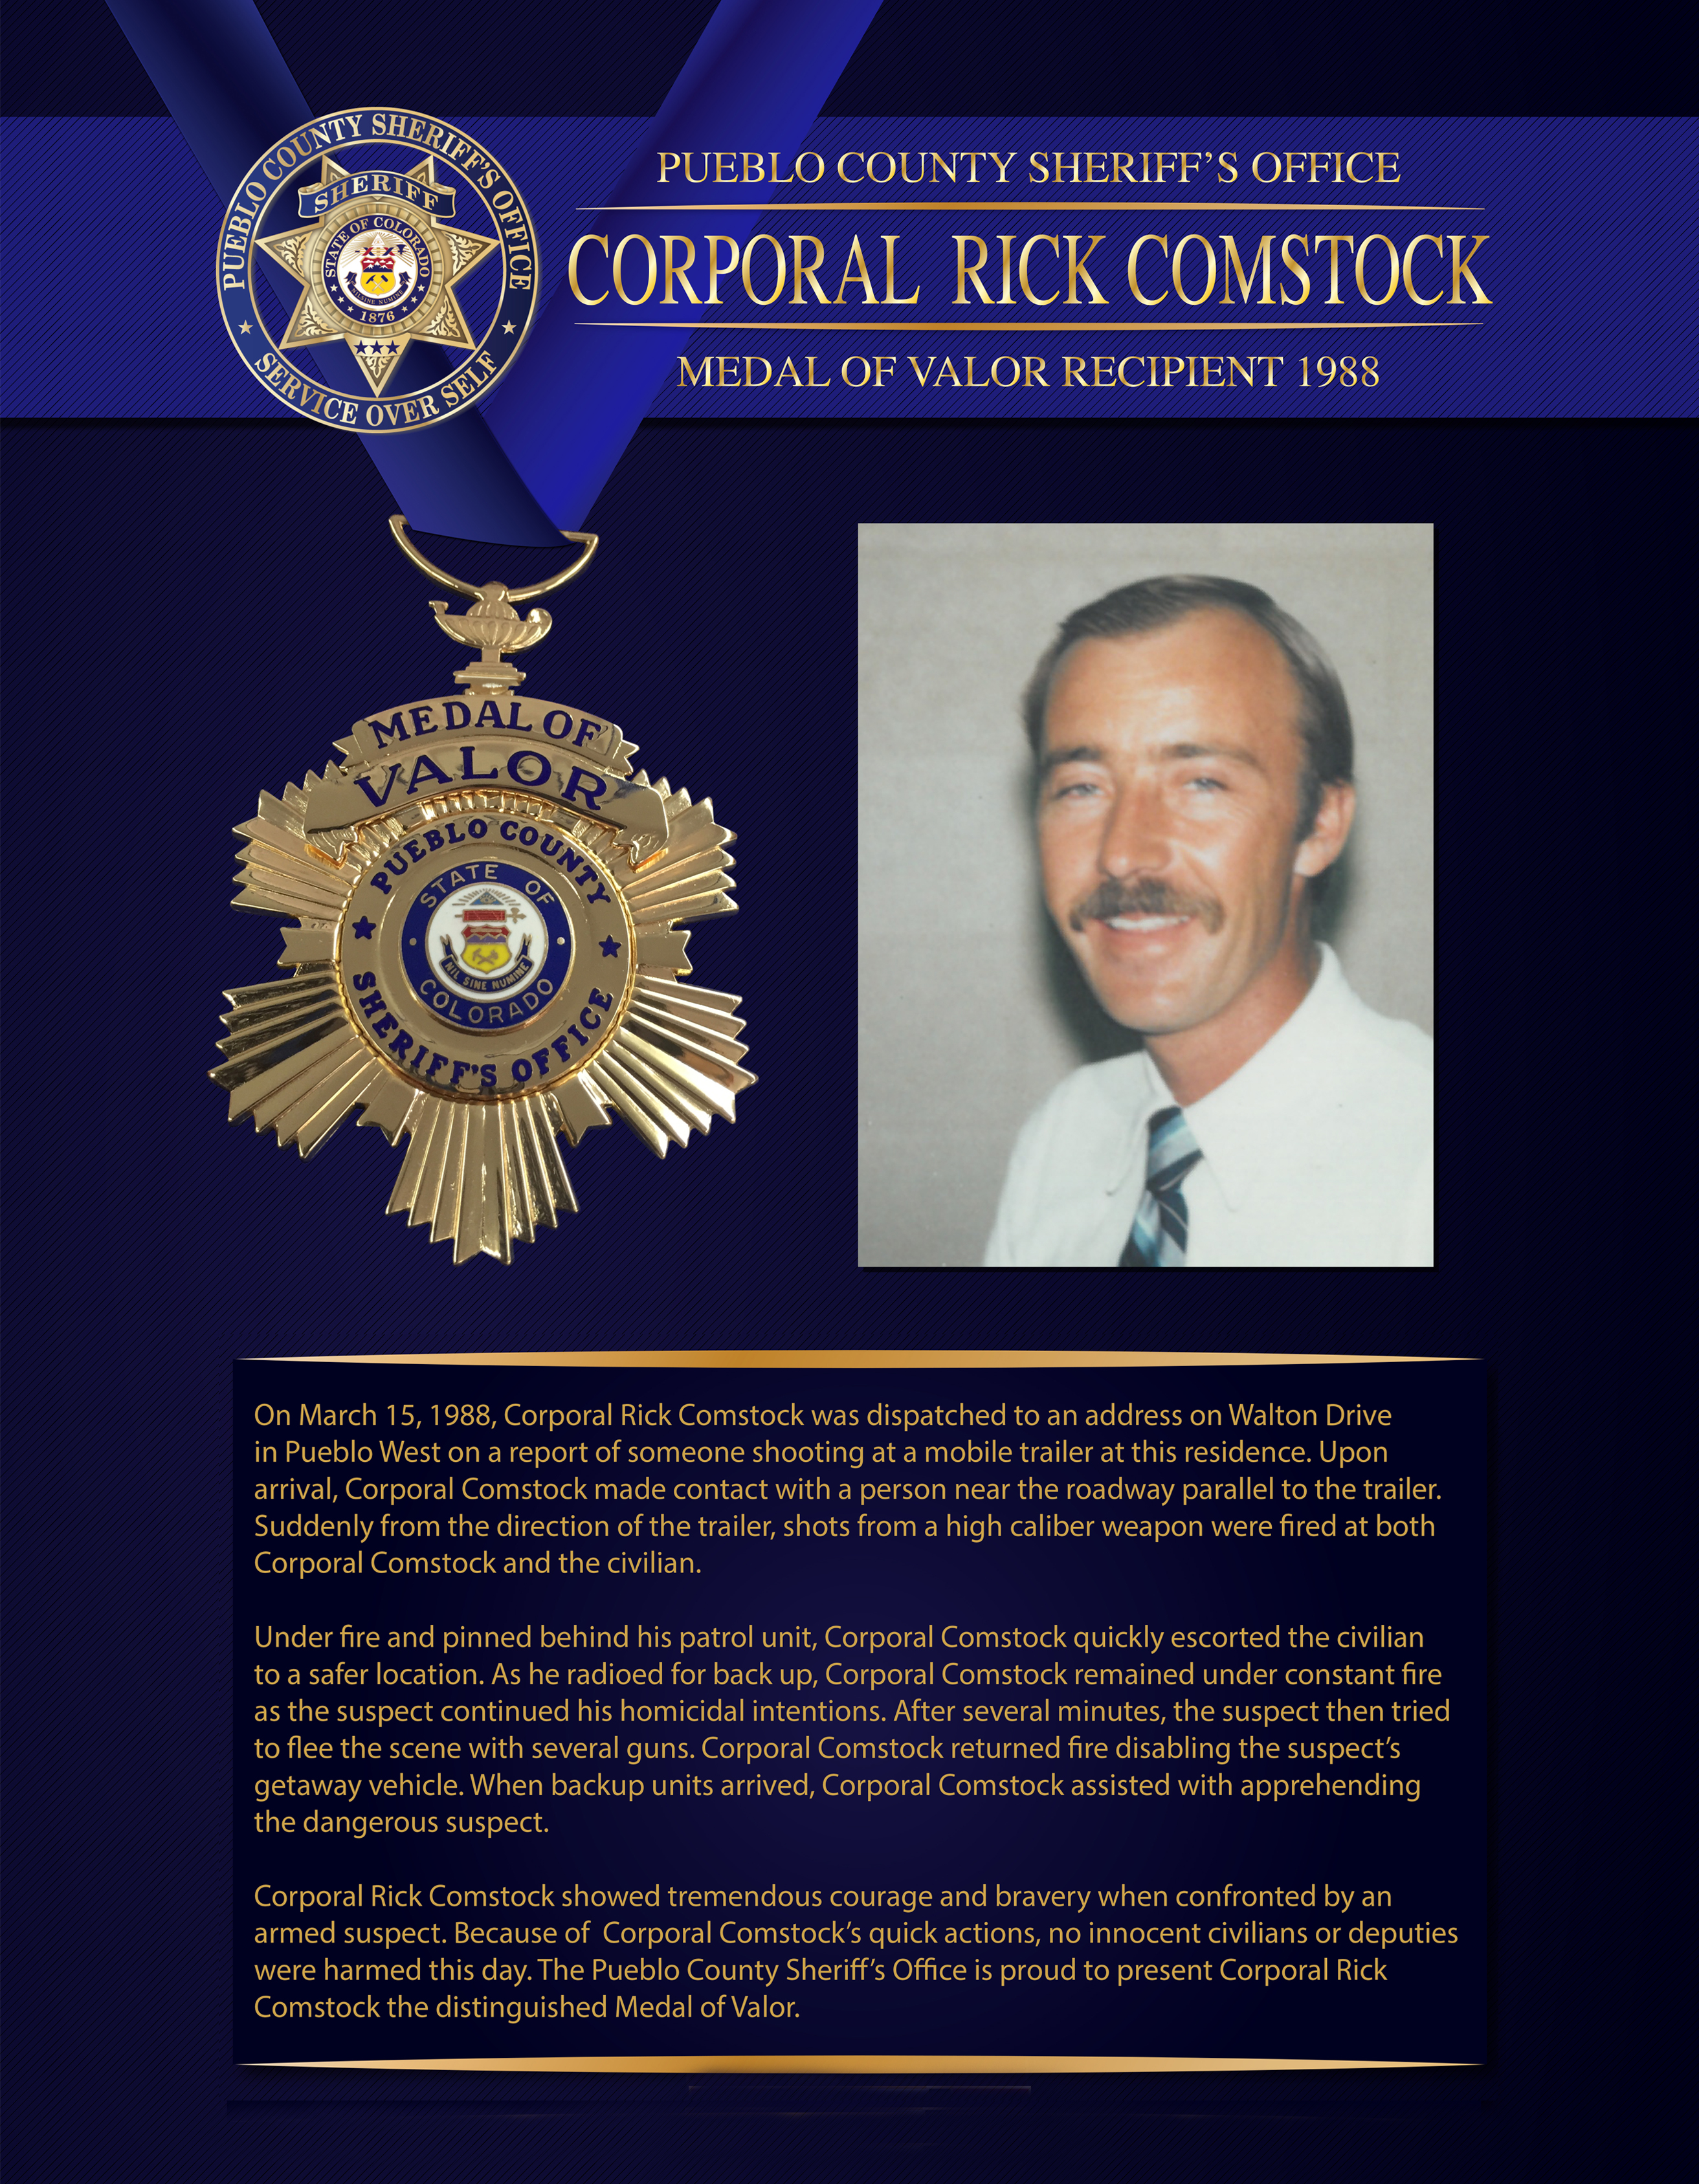 Comstock Medal of Valor